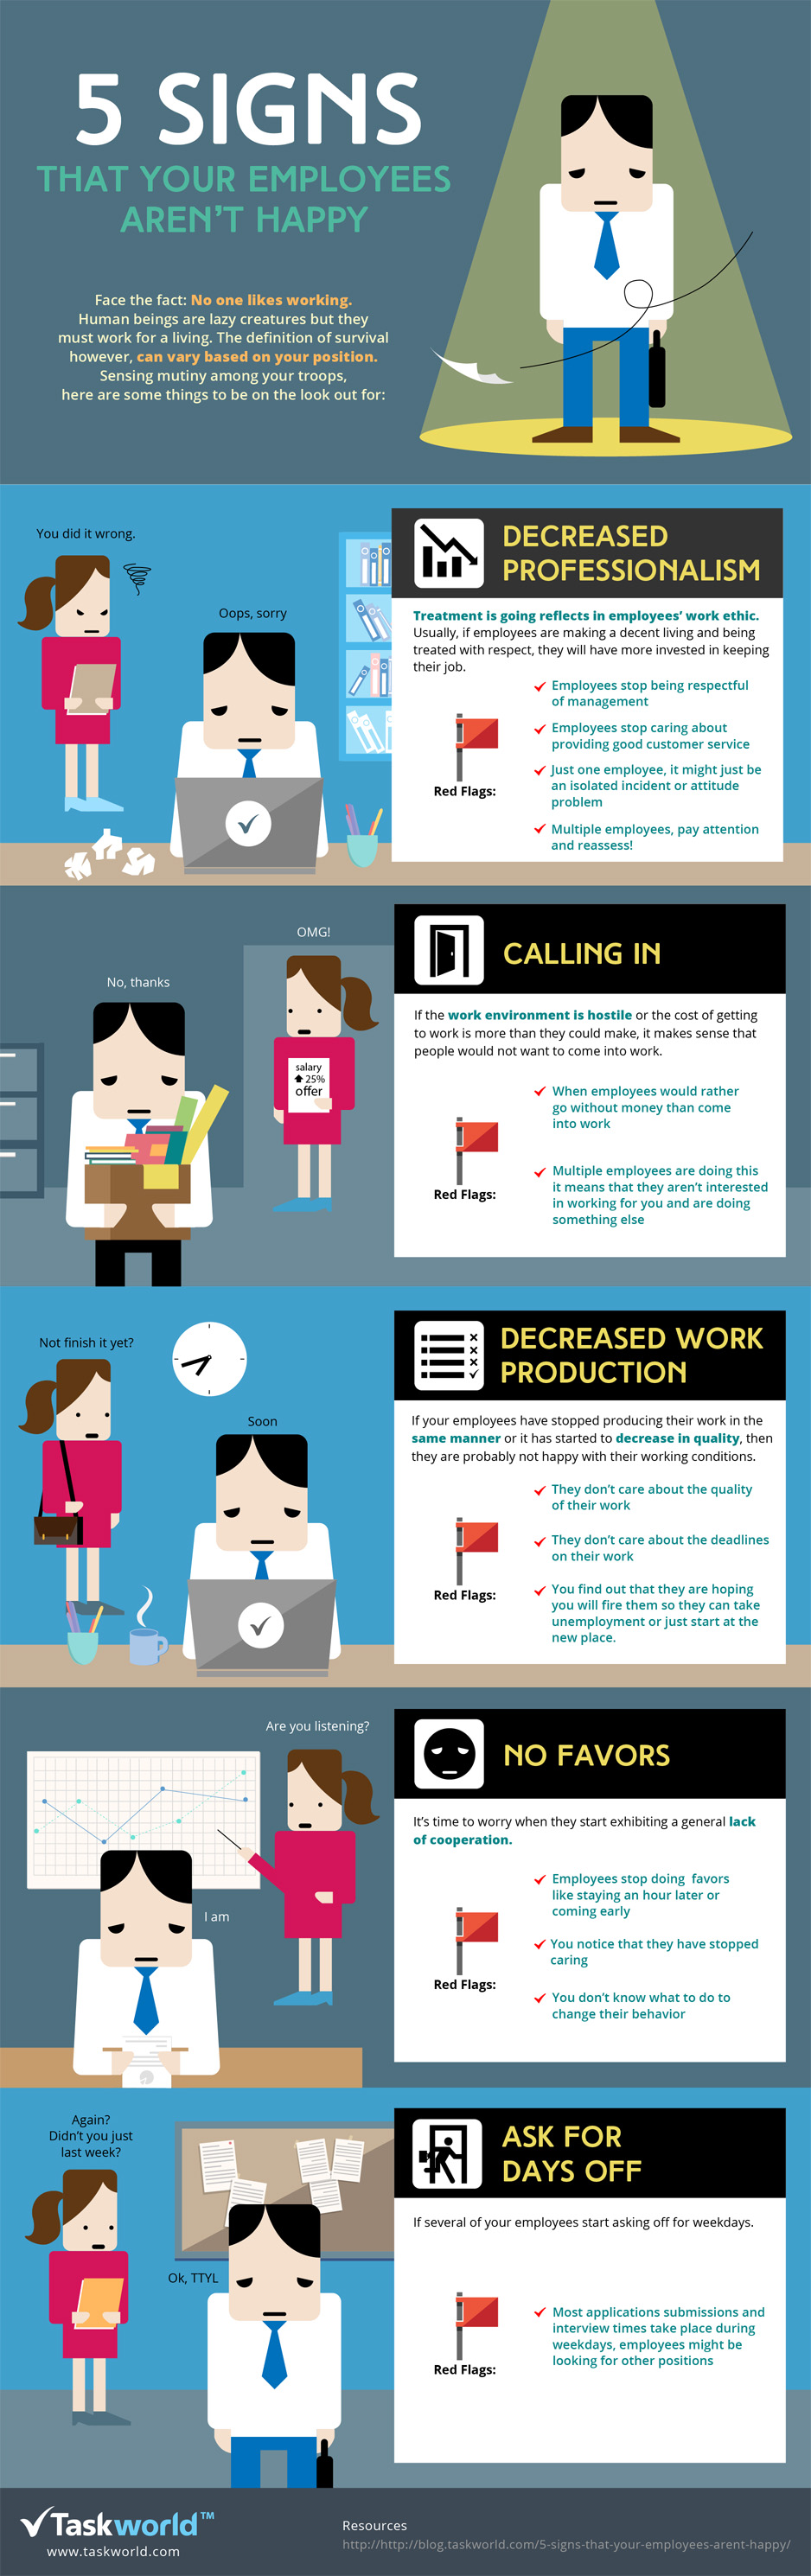 5-signs-that-your-employees-are-unhappy-infographic-plaza